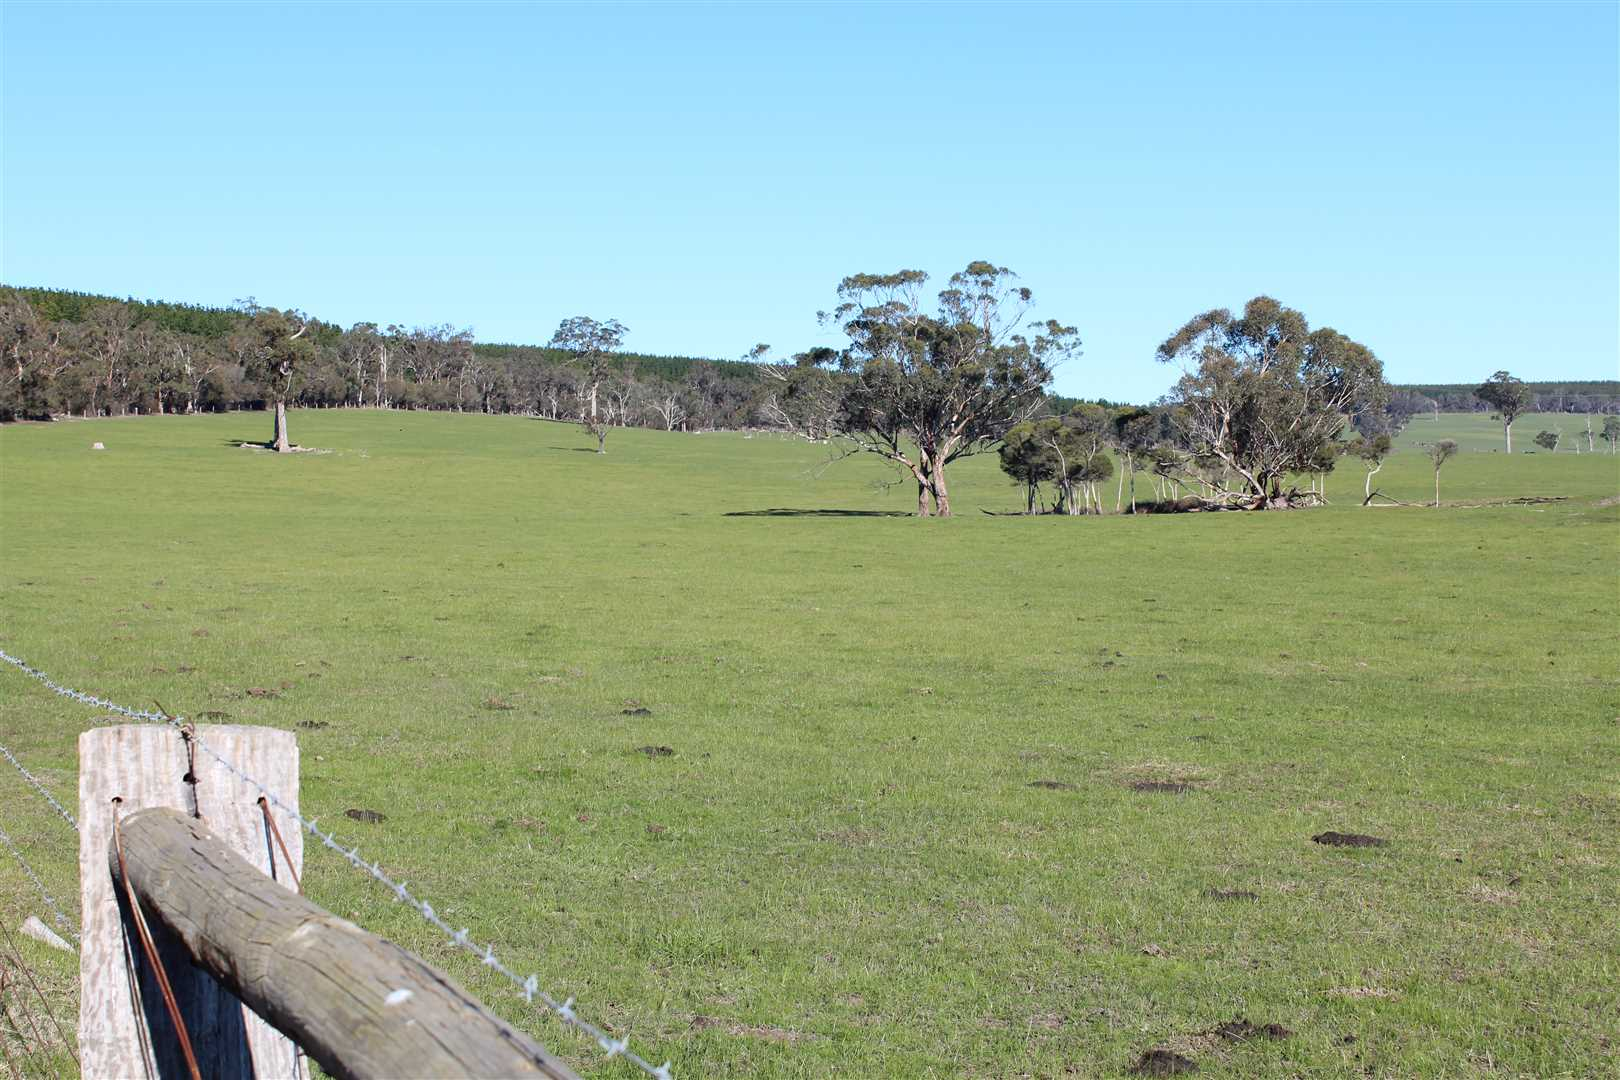 352 Acres of Prime Grazing Property